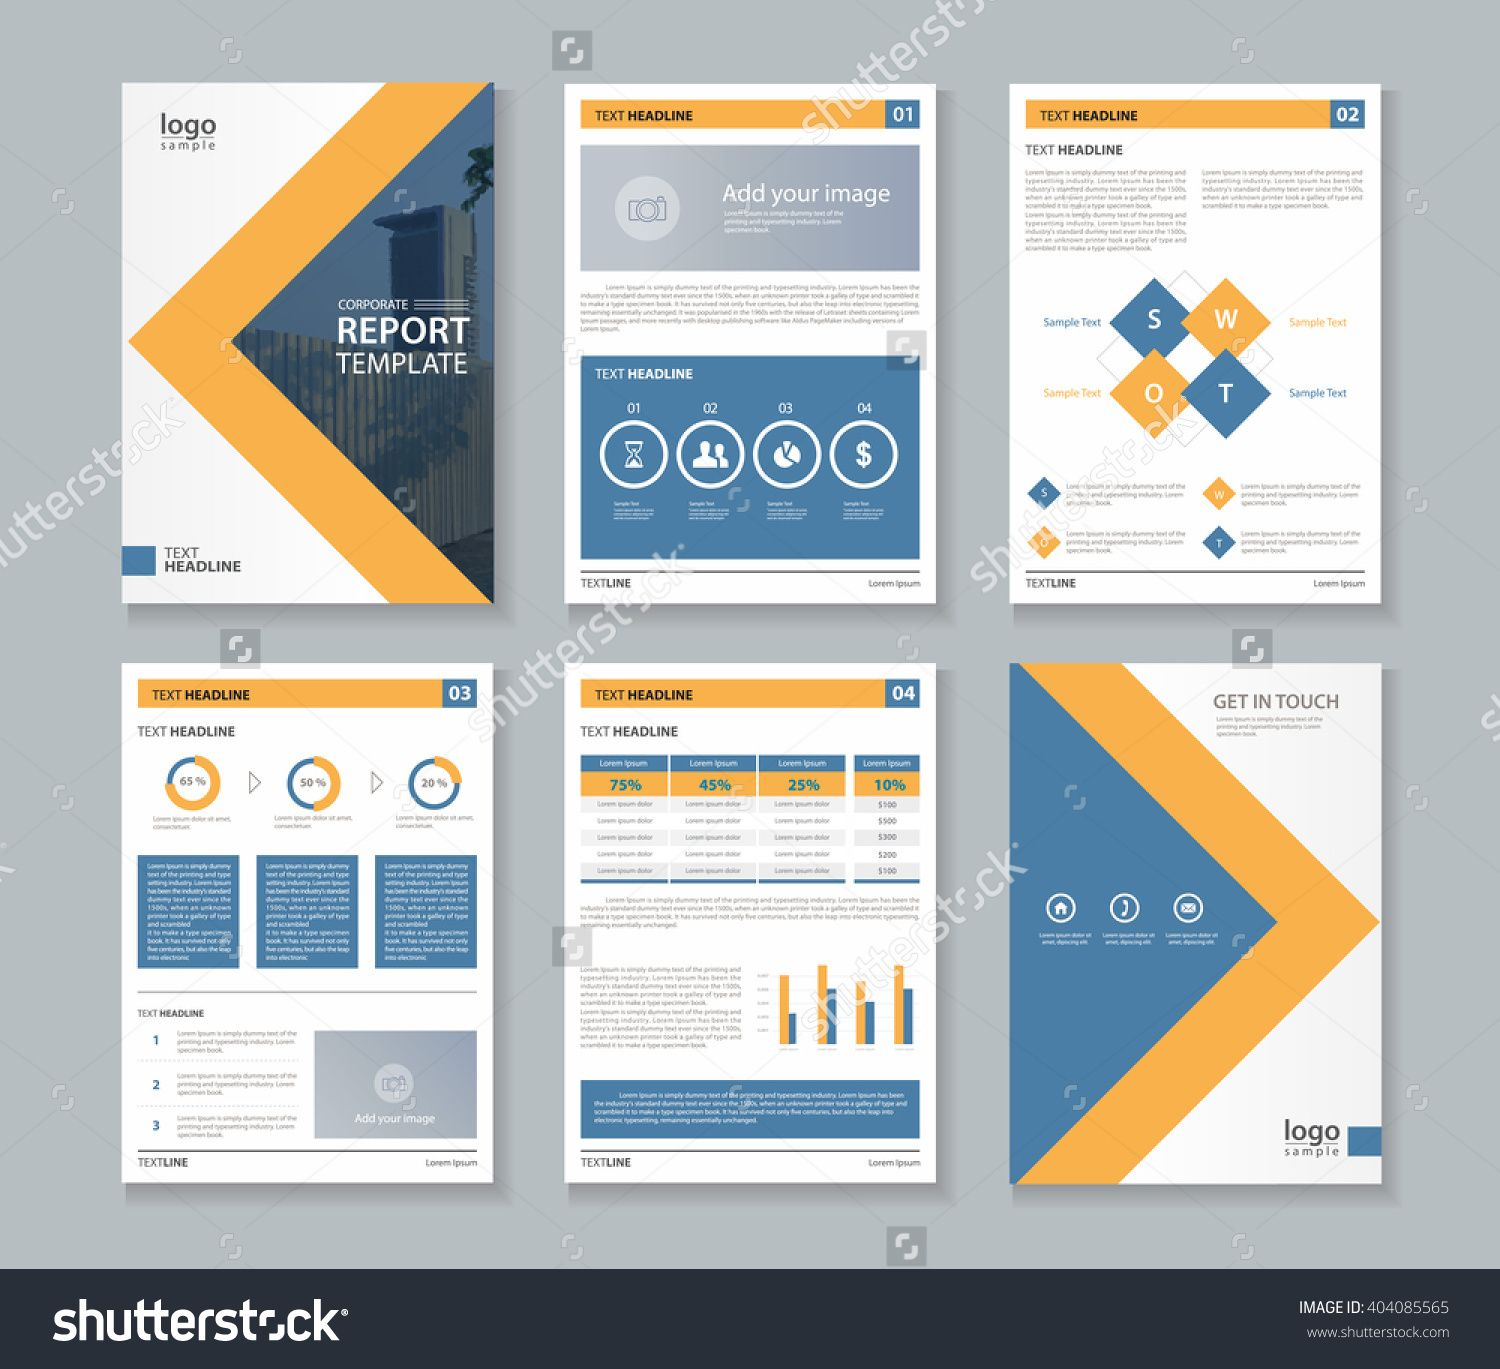 Doc814883 Templates of Company Profiles 1000 images about – Templates for Company Profile